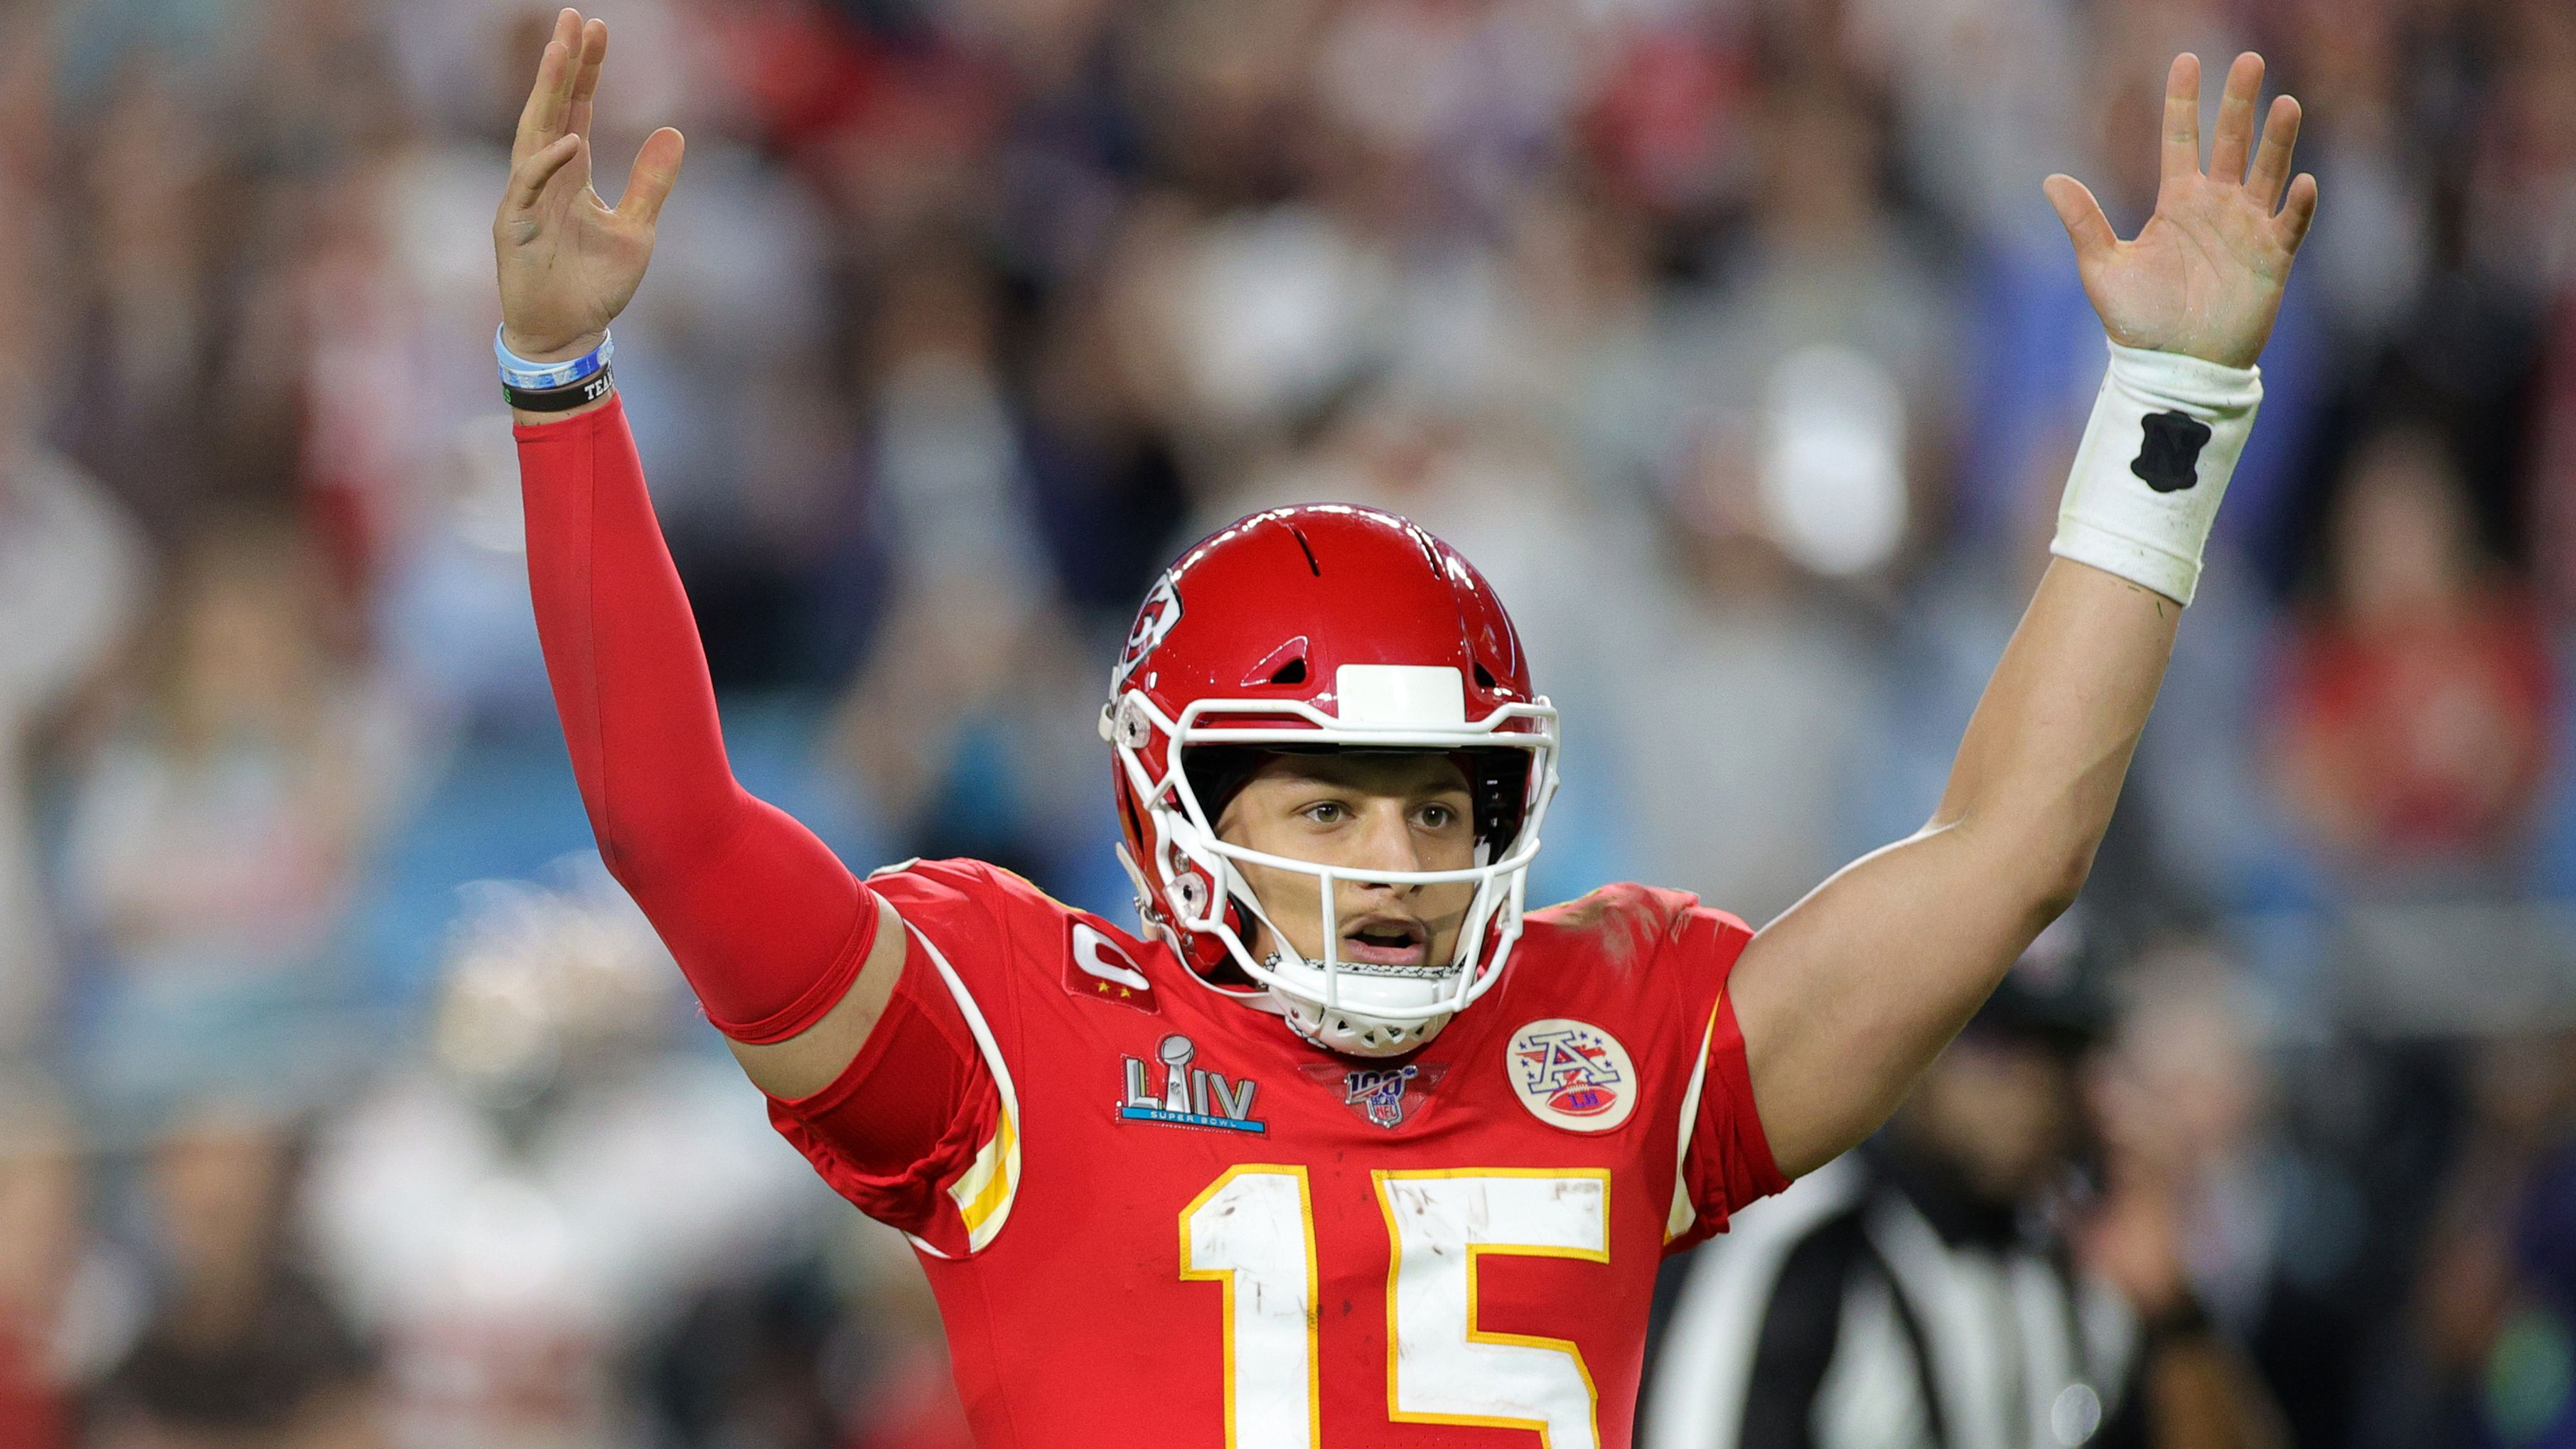 Patrick Mahomes celebrates throwing a touchdown pass in Super Bowl LIV.